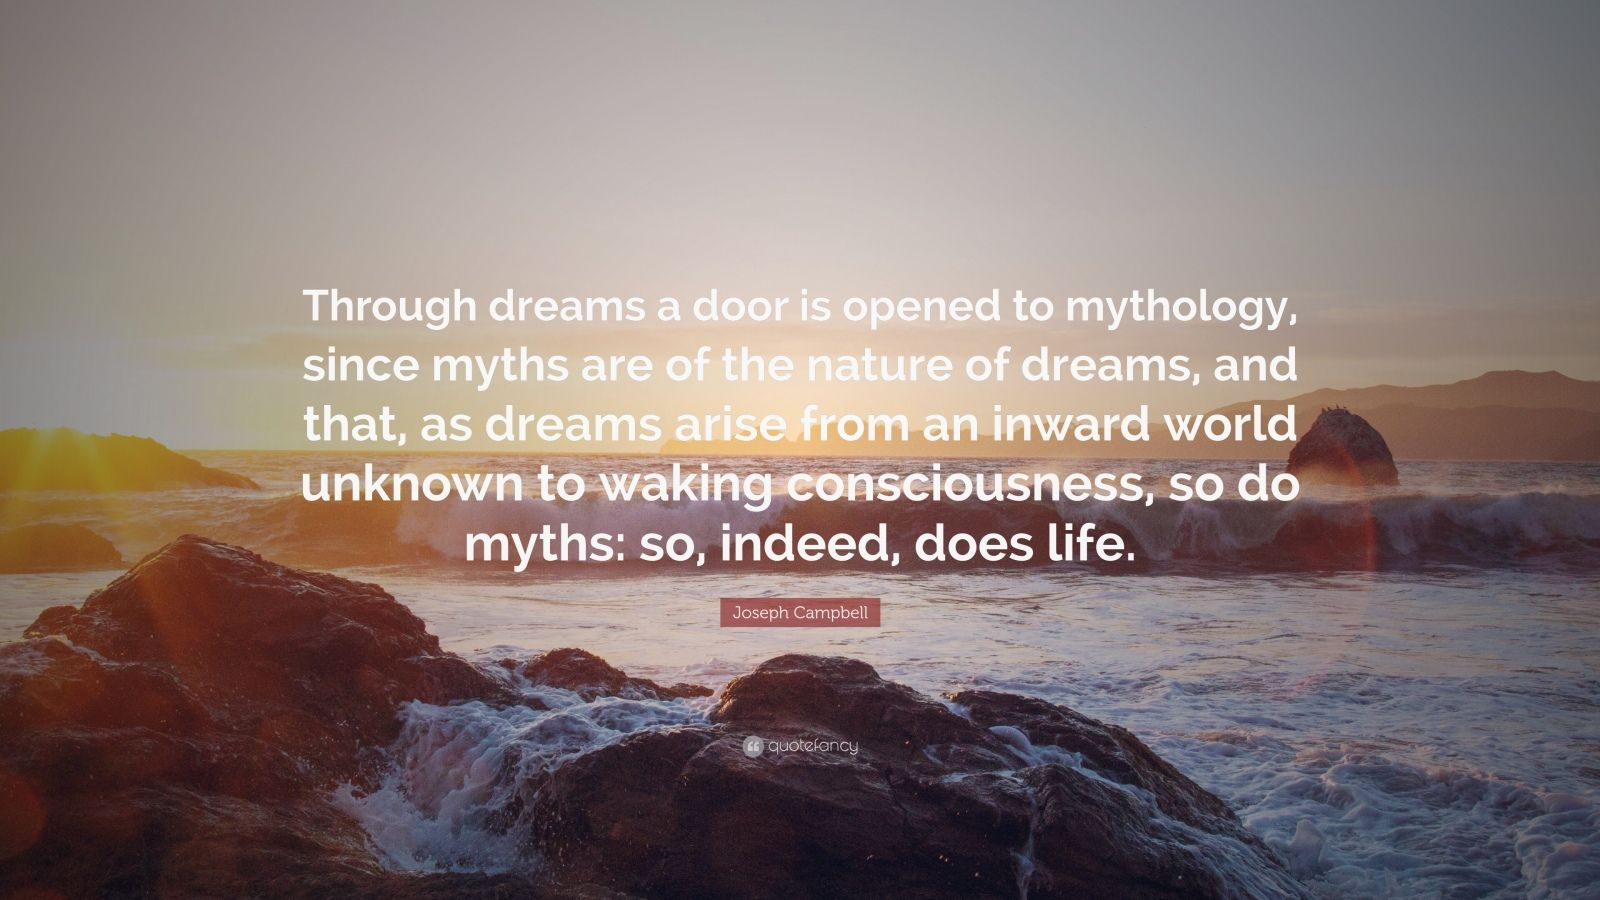 """Joseph Campbell Quote: """"Through dreams a door is opened to mythology, since myths are of the nature of dreams, and that, as dreams arise from an inward world unknown to waking consciousness, so do myths: so, indeed, does life."""""""